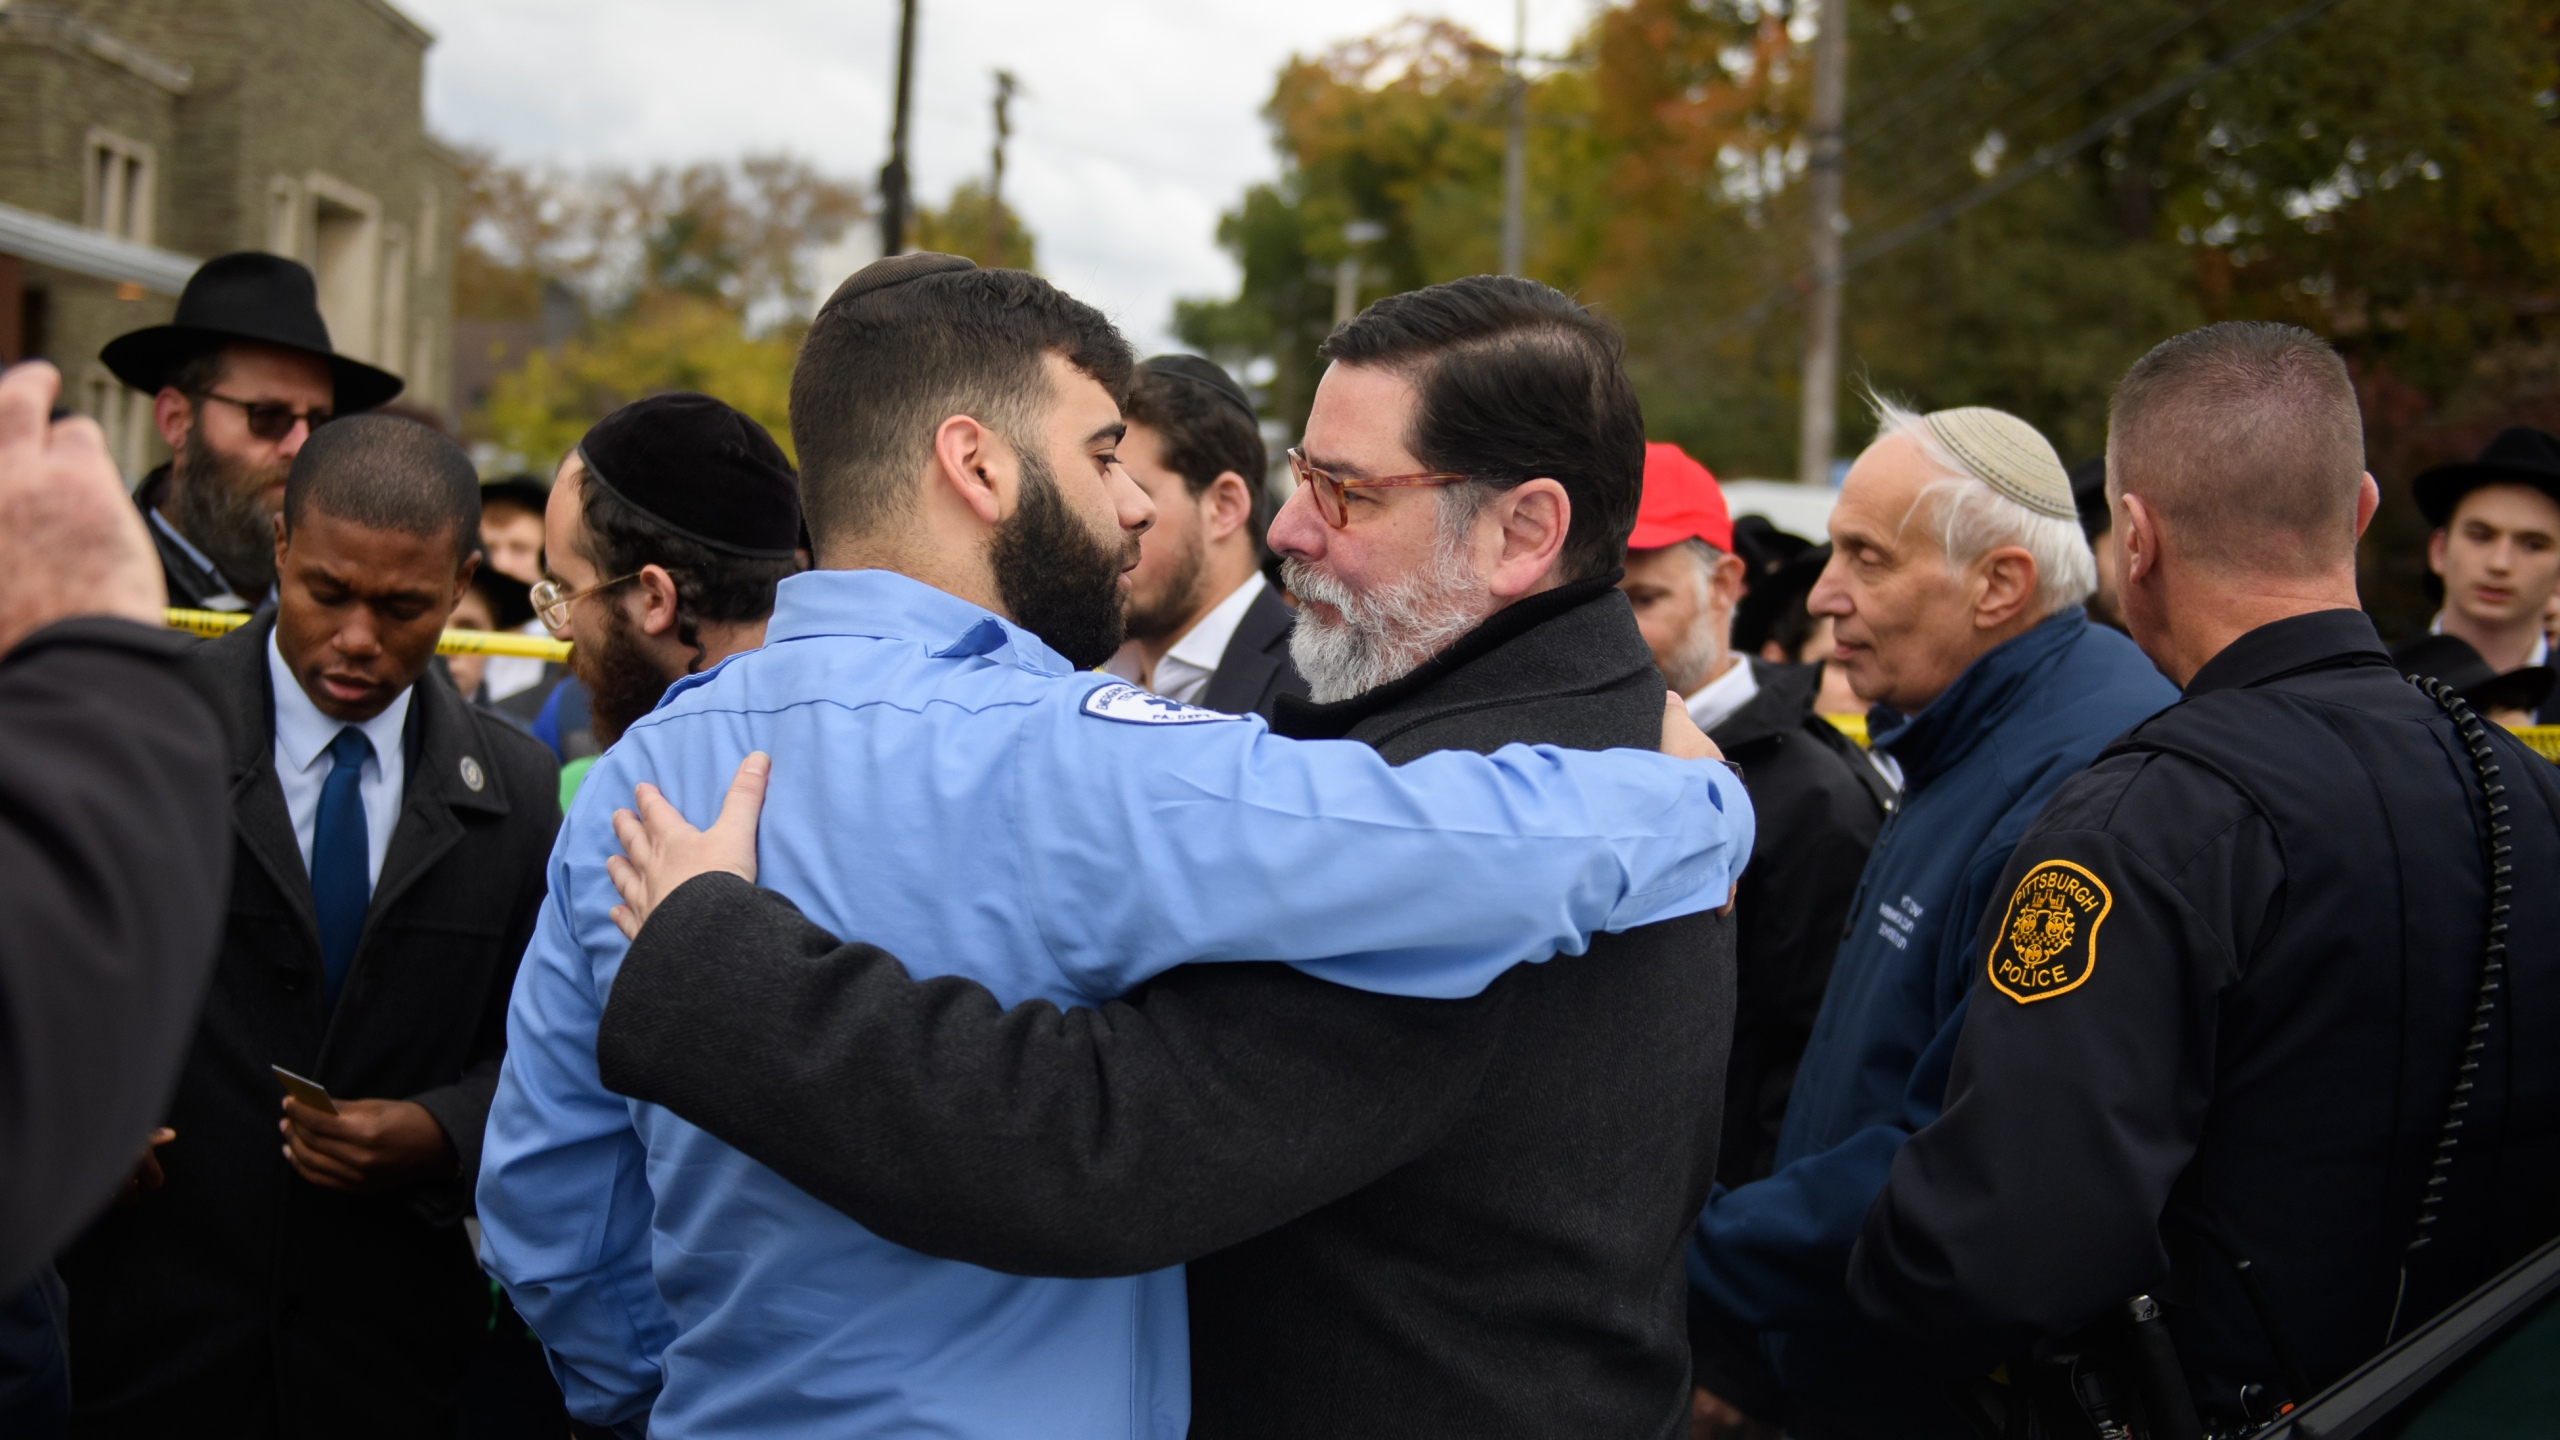 Pittsburgh Mayor Bill Peduto hugs an EMT after a prayer held at the site of the mass shooting that killed 11 people on Oct. 29, 2018. (Credit: Jeff Swensen/Getty Images)